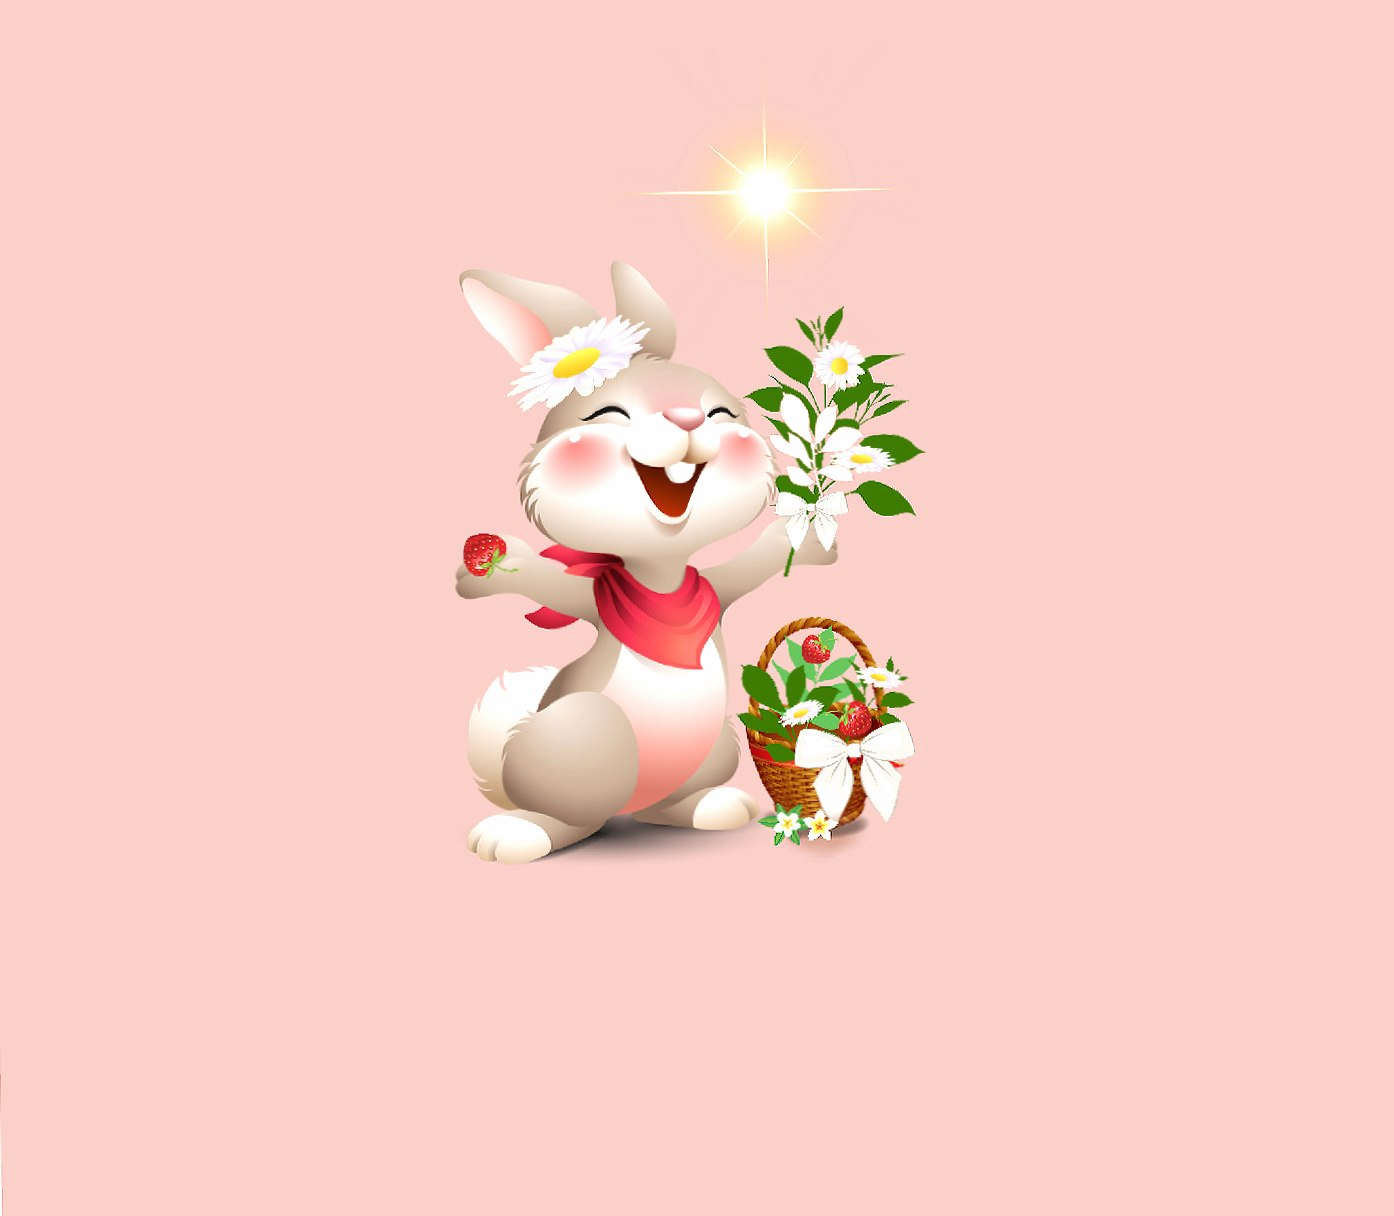 Happy Rabbit 2 wallpapers HD quality